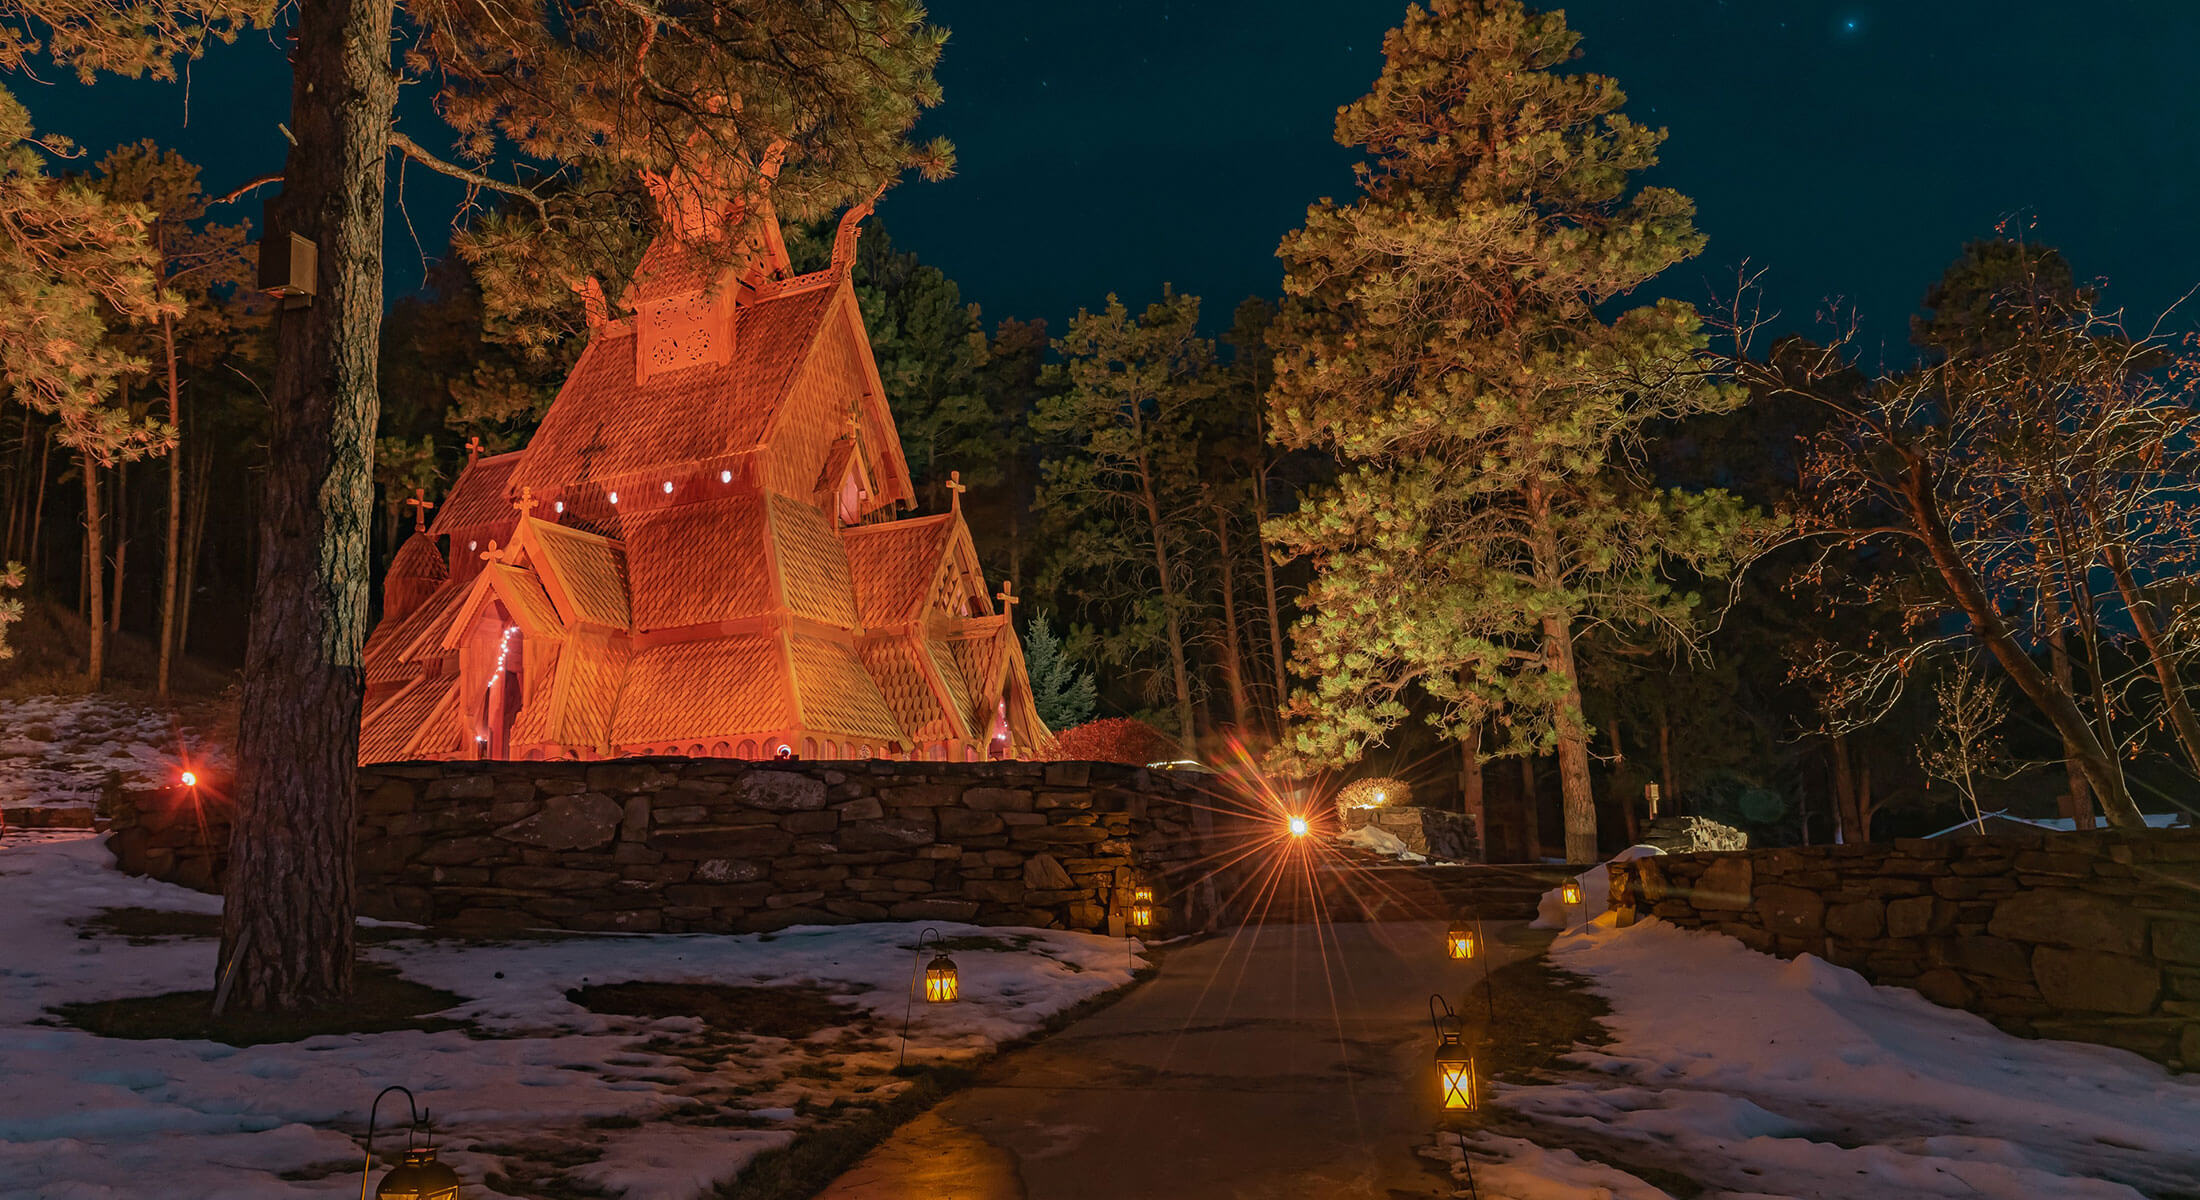 Chapel in the Hills Lit Up for Christmas